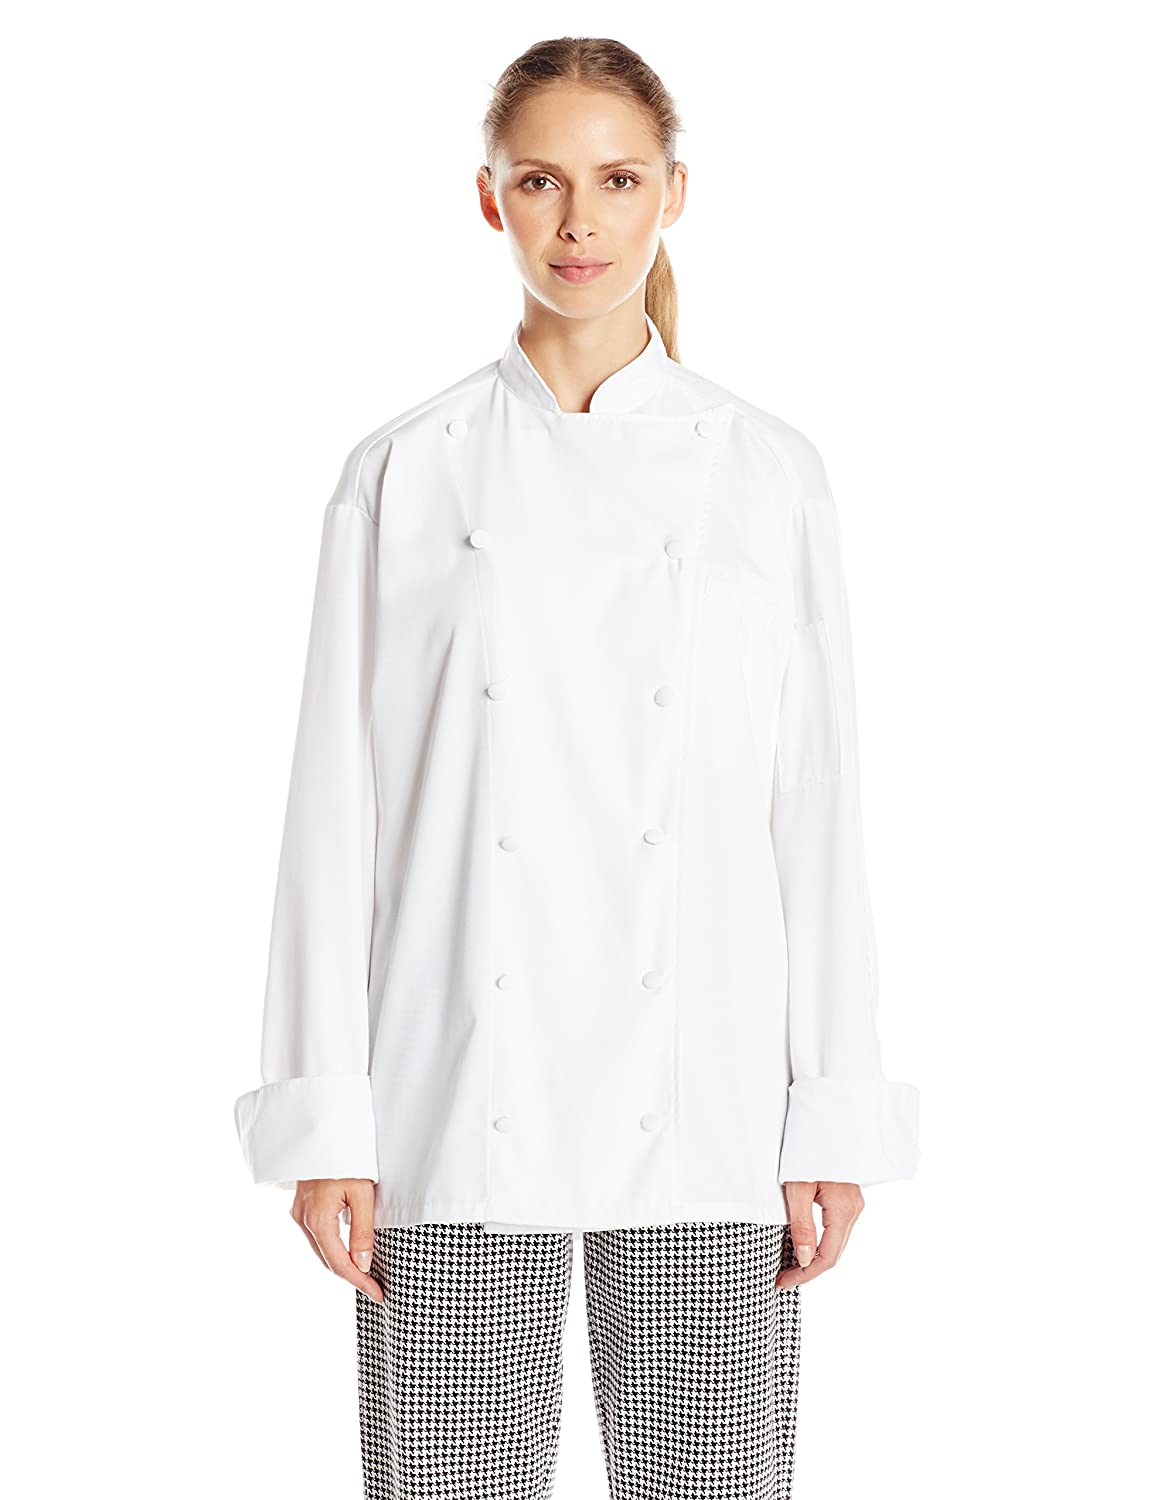 Uncommon Threads Barbados Chef Coat 0481